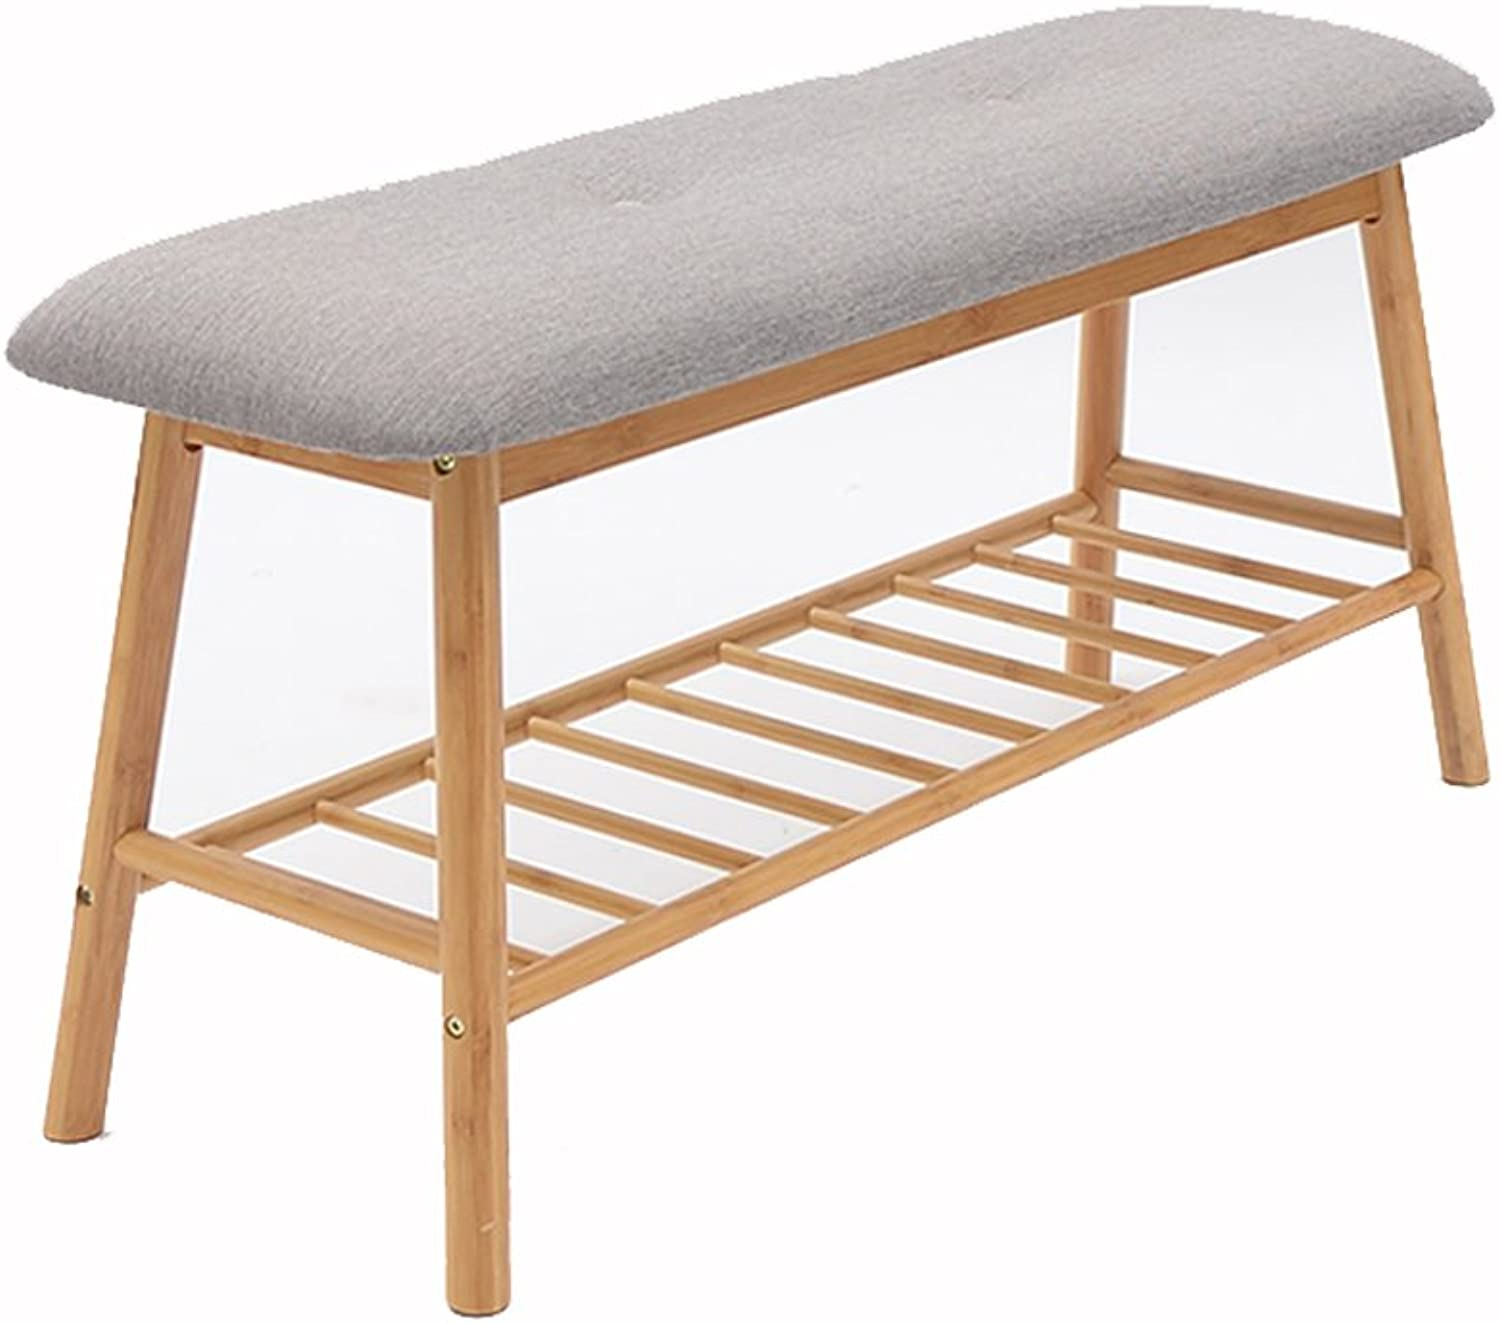 LIUXUEPING Scandinavian-Style shoes Stools to Go for shoes Stool Simple Modern shoes Cabinet Can Sit shoes Rack Solid Wood Bed Stool